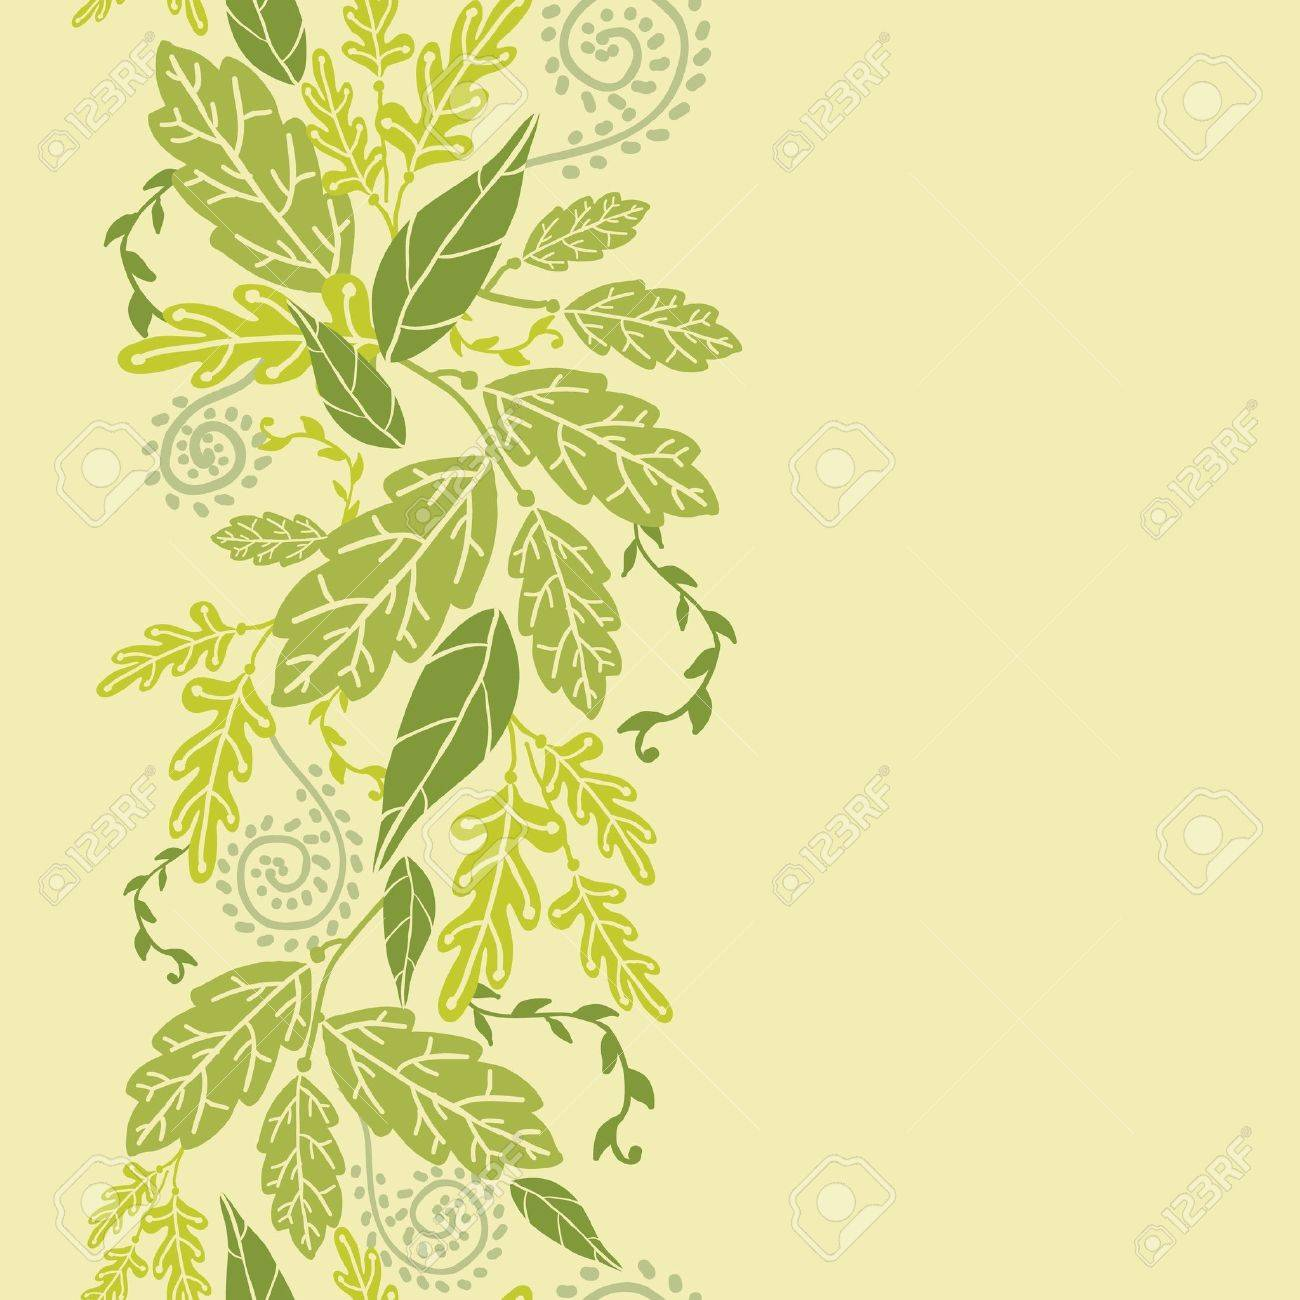 Green Leaves Vertical Seamless Pattern Background border Stock Vector - 16564755